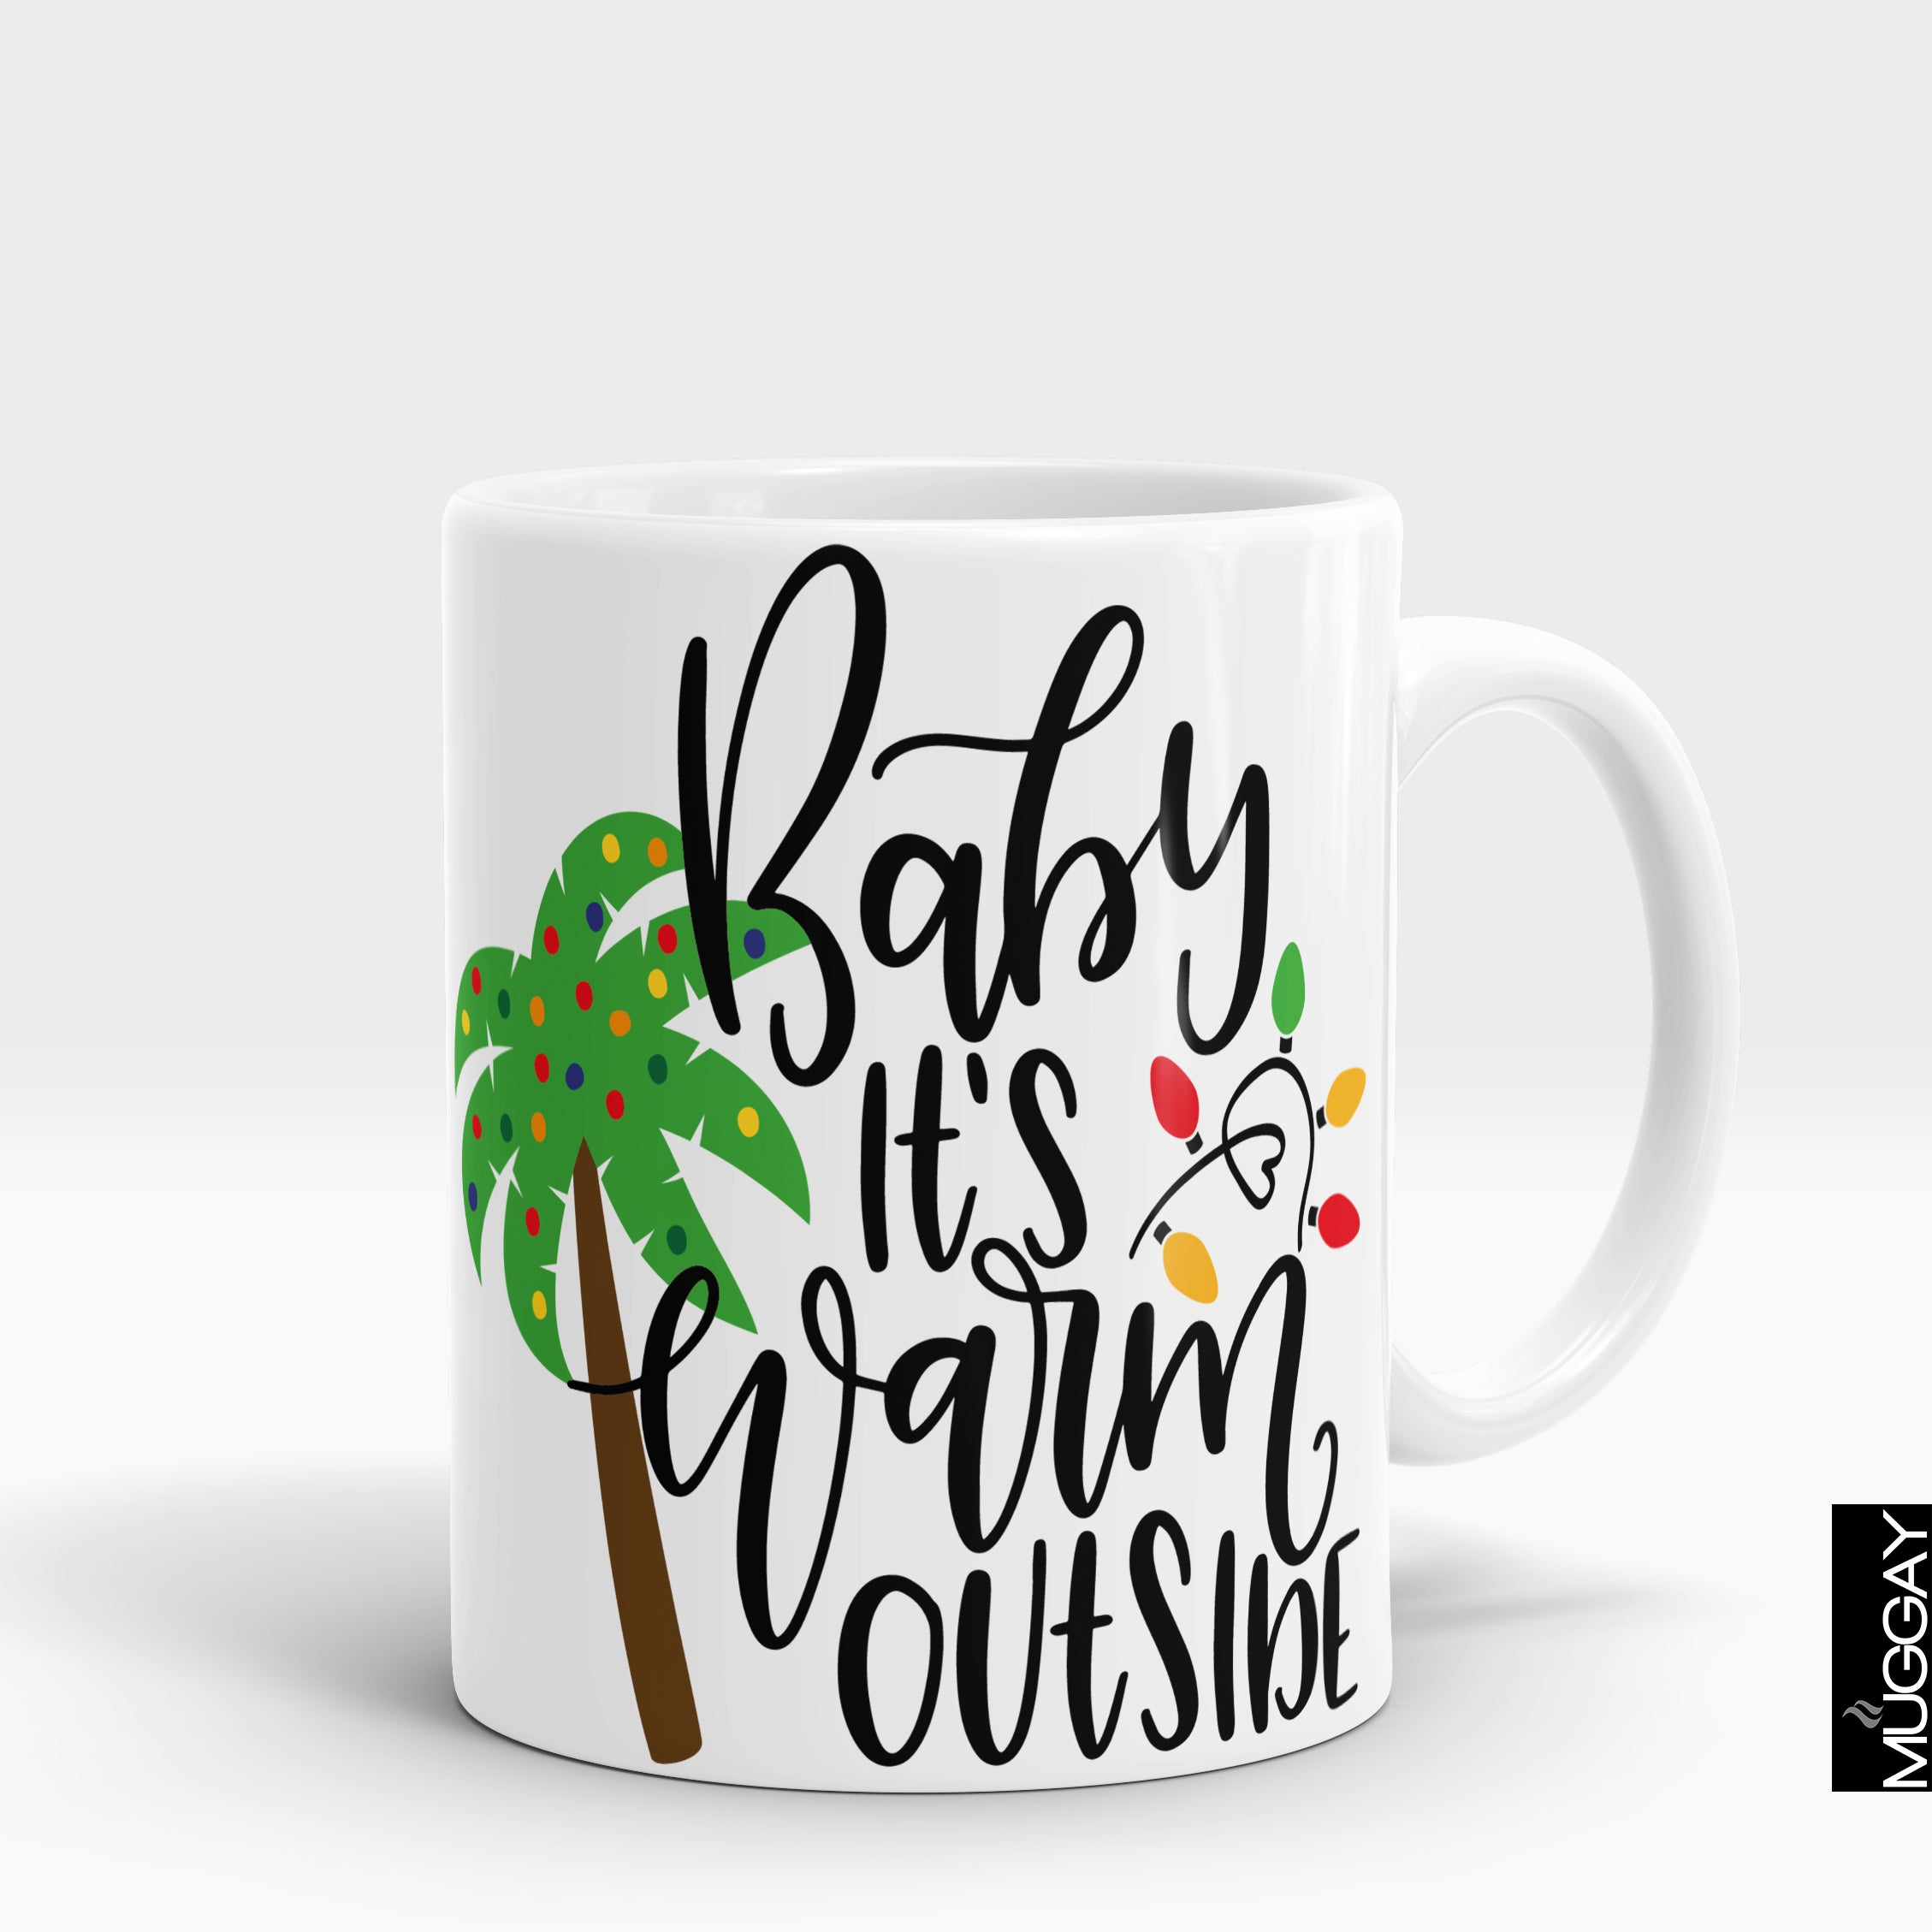 Baby its warm outside - Muggay.com - Mugs - Printing shop - truck Art mugs - Mug printing - Customized printing - Digital printing - Muggay